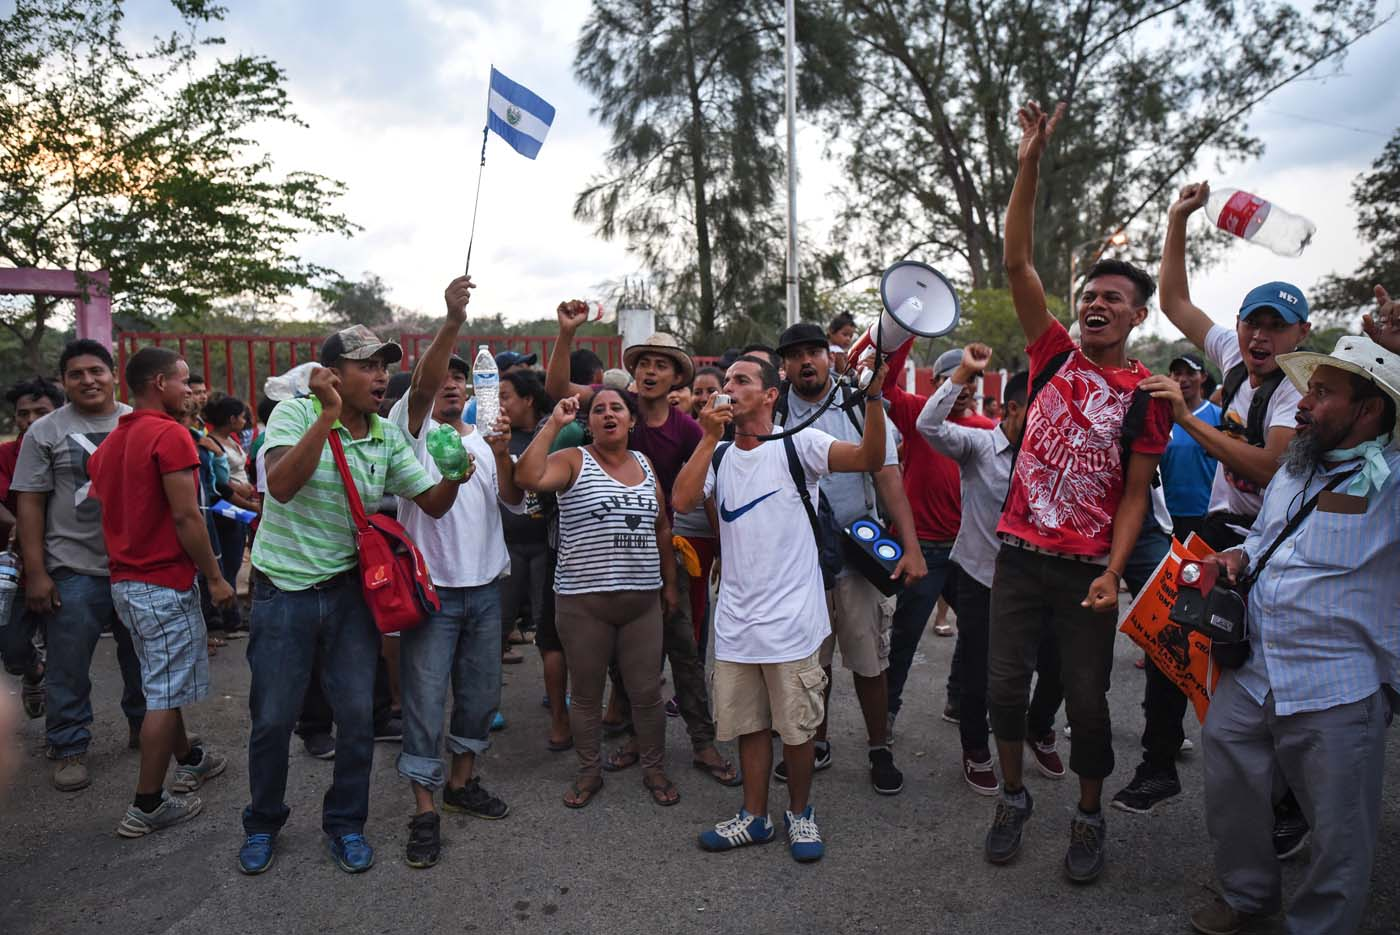 """A migrant with a loudspeaker -alongside other Central Americans taking part in a caravan called """"Migrant Viacrucis"""" towards the United States- takes part in a march to protest against US President Donald Trump's policies in Matias Romero, Oaxaca State, Mexico, on April 3, 2018. The hundreds of Central Americans in the """"Way of the Cross"""" migrant caravan have infuriated Trump, but they are not moving very fast -- if at all -- and remain far from the US border. As Trump vowed Tuesday to send troops to secure the southern US border, the caravan was camped out for the third straight day in the town of Matias Romero, in southern Mexico, more than 3,000 kilometers (1,800 miles) from the United States. / AFP PHOTO / VICTORIA RAZO"""